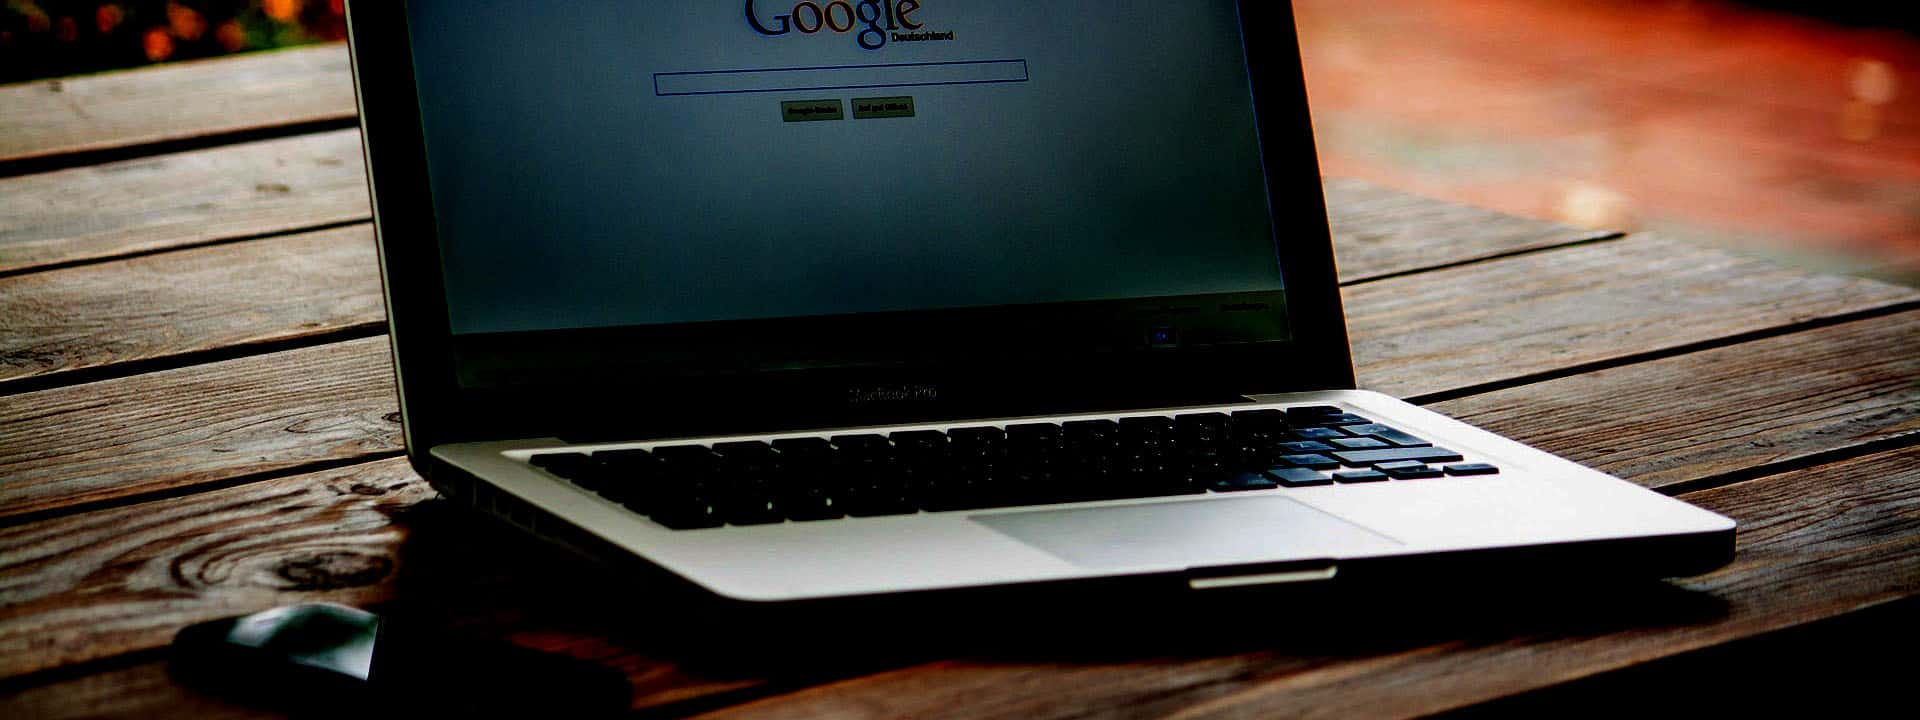 How To Use INURL Parameter of Google to Find Anything From a Website